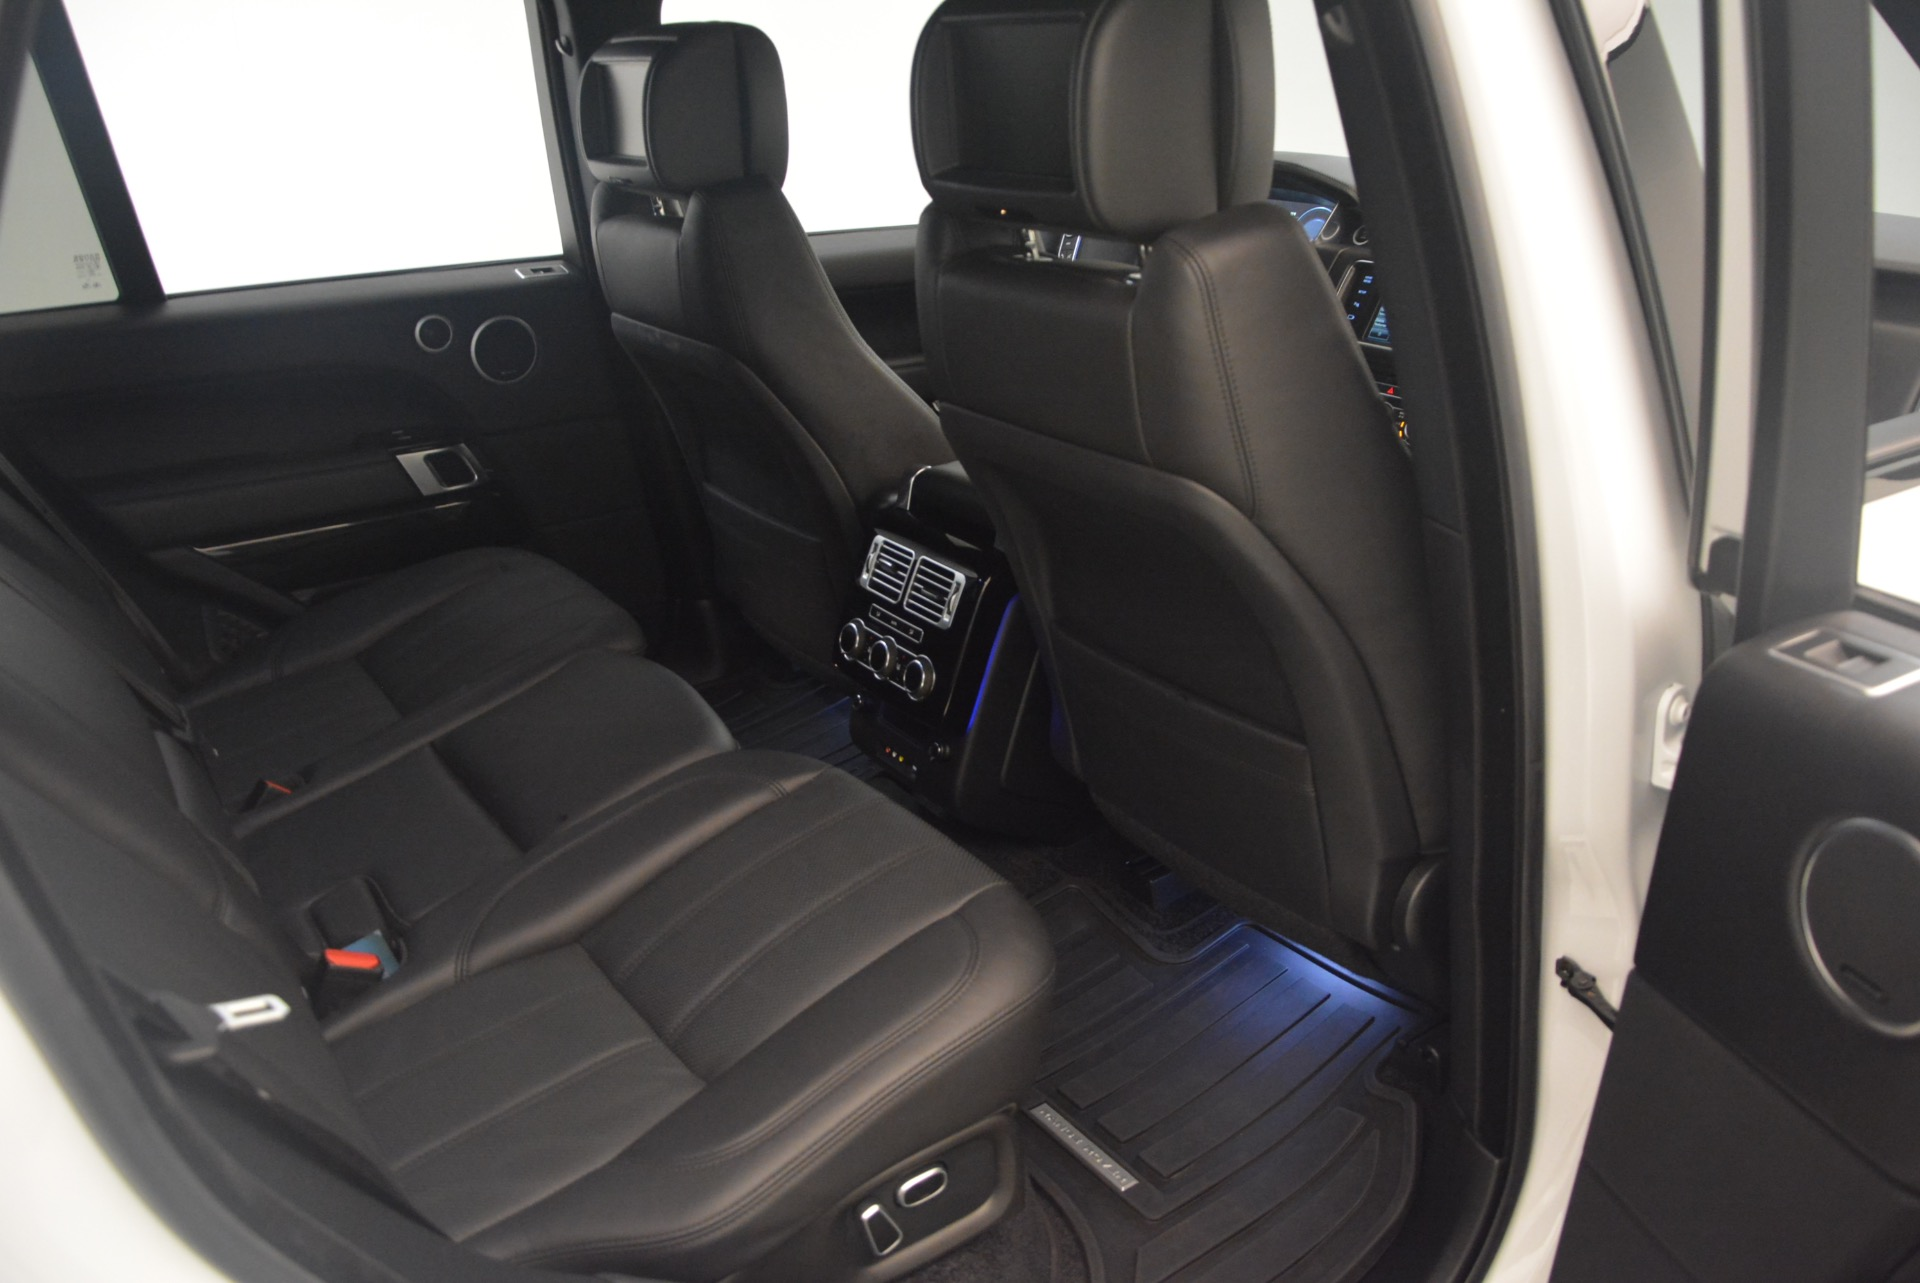 Used 2015 Land Rover Range Rover Supercharged For Sale In Westport, CT 1292_p35